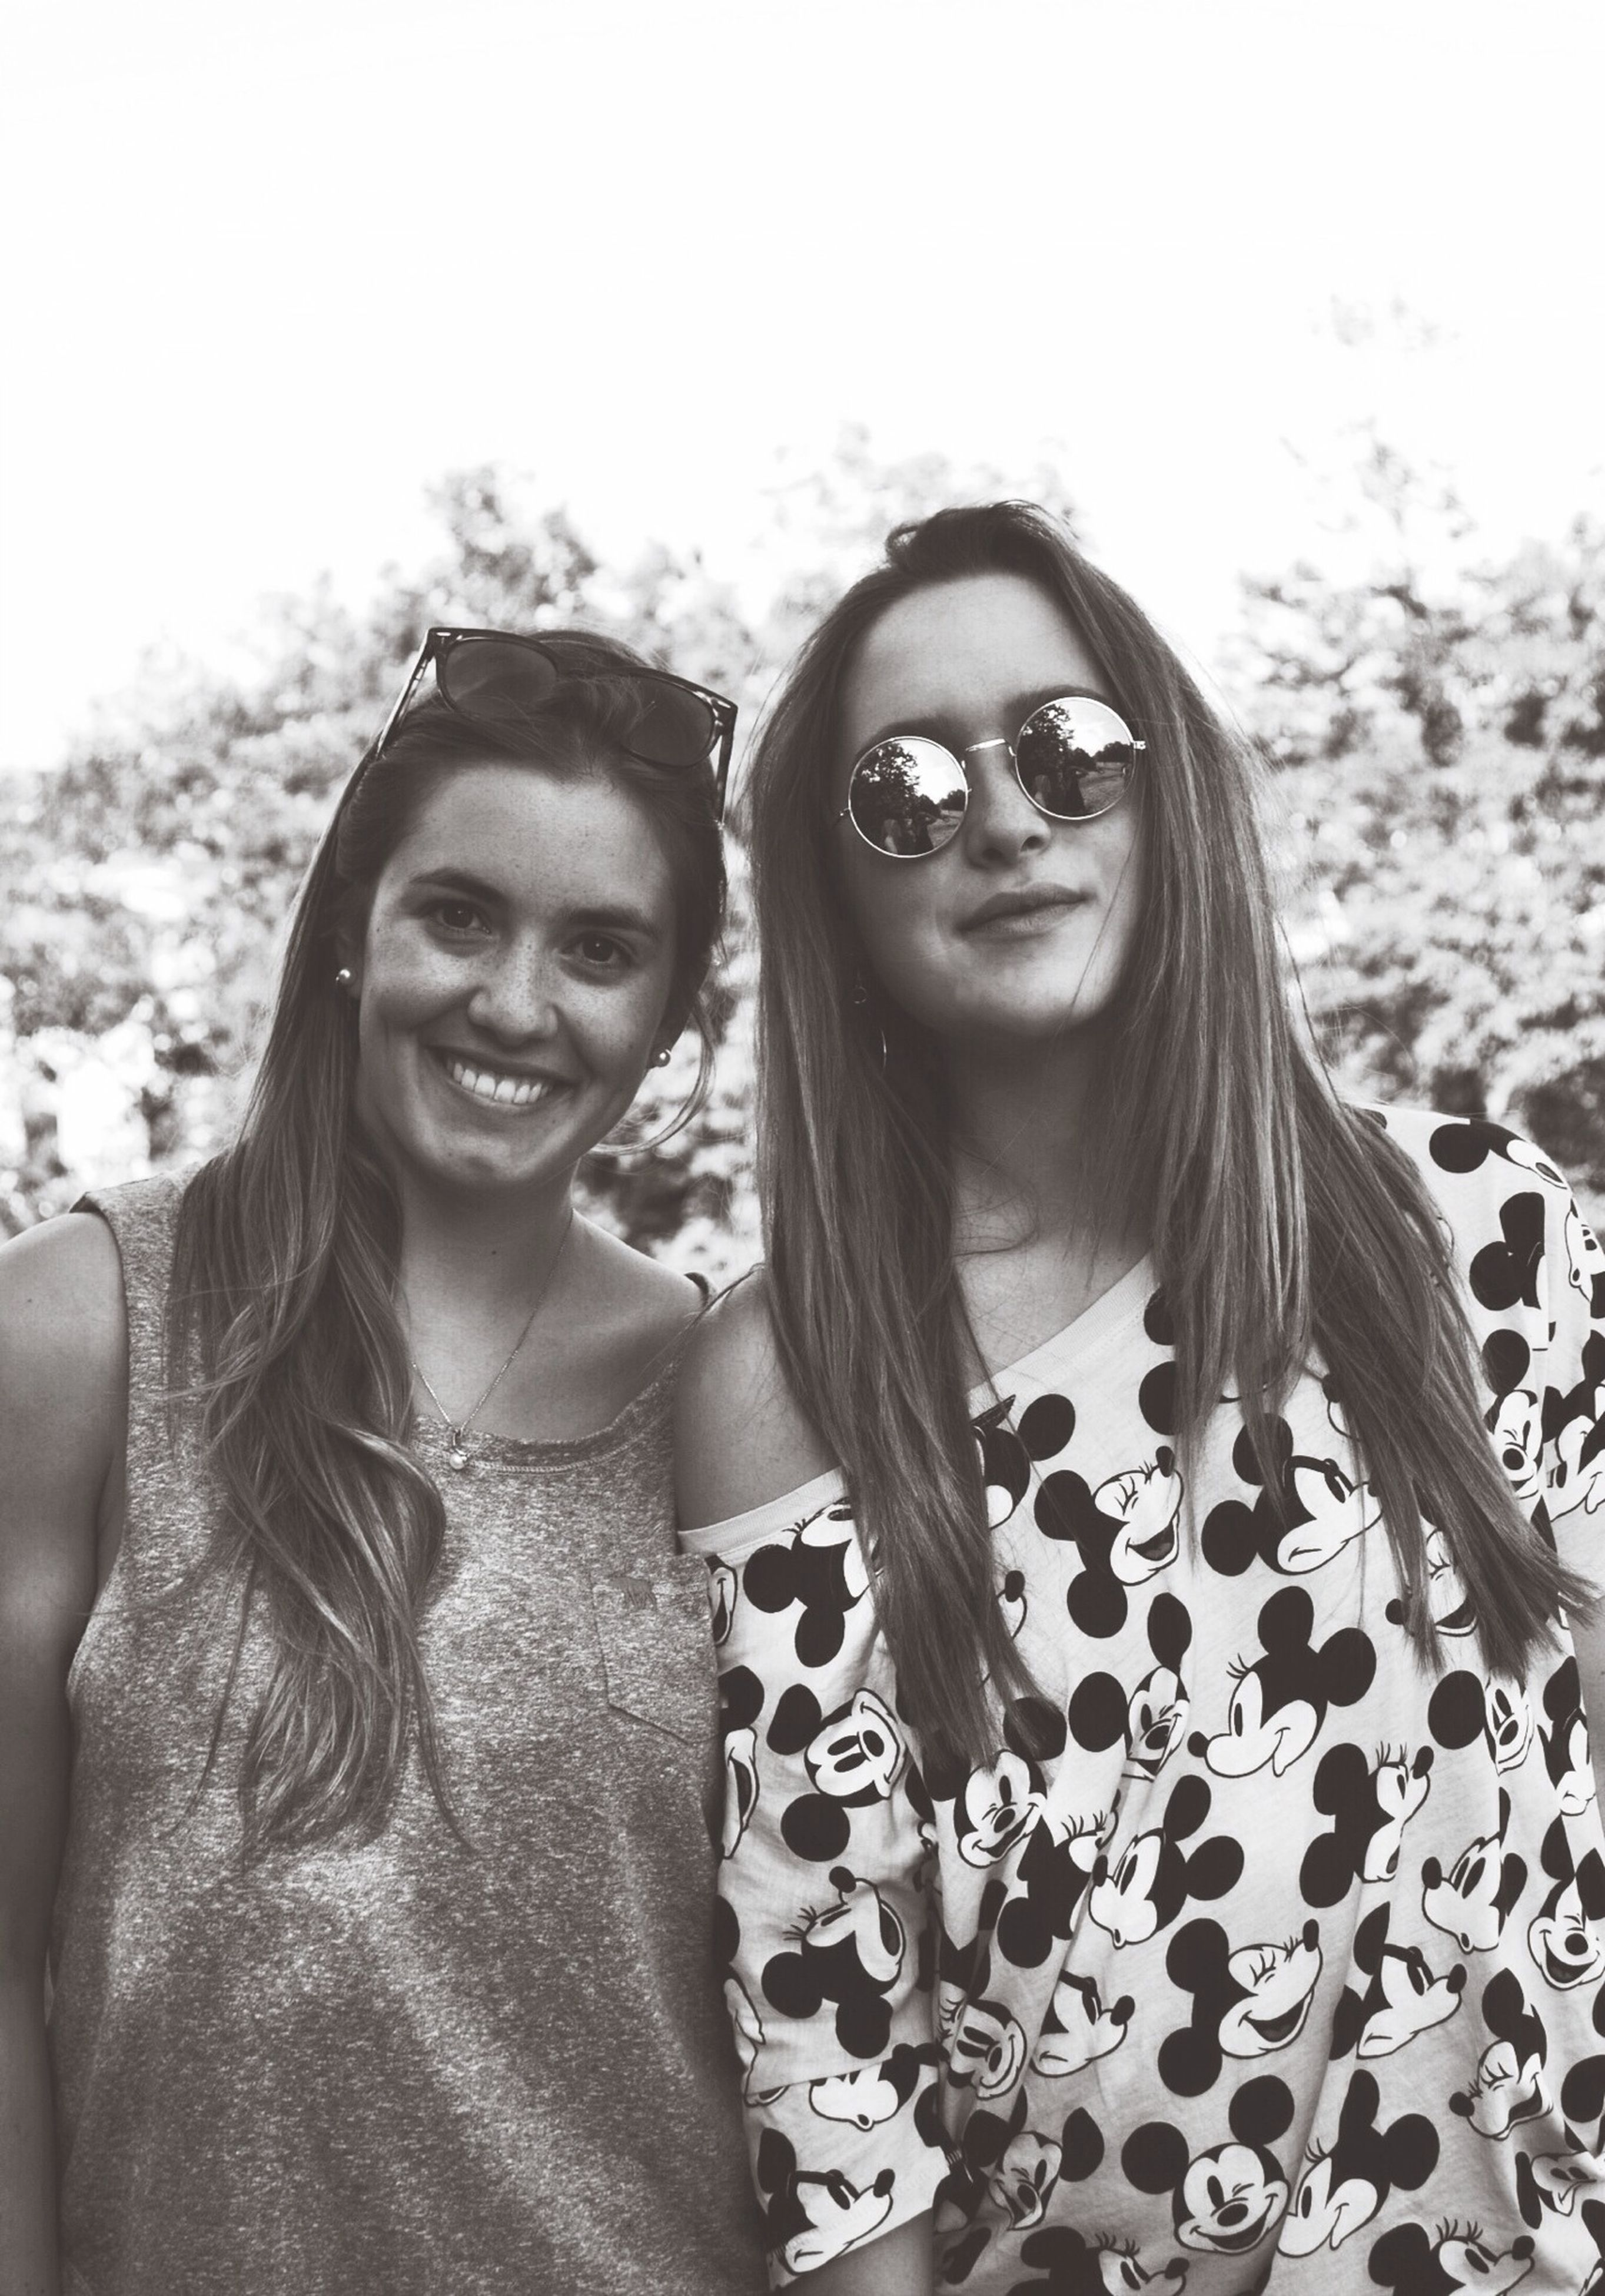 portrait, looking at camera, young adult, lifestyles, person, smiling, leisure activity, front view, young women, casual clothing, happiness, toothy smile, togetherness, bonding, sunglasses, waist up